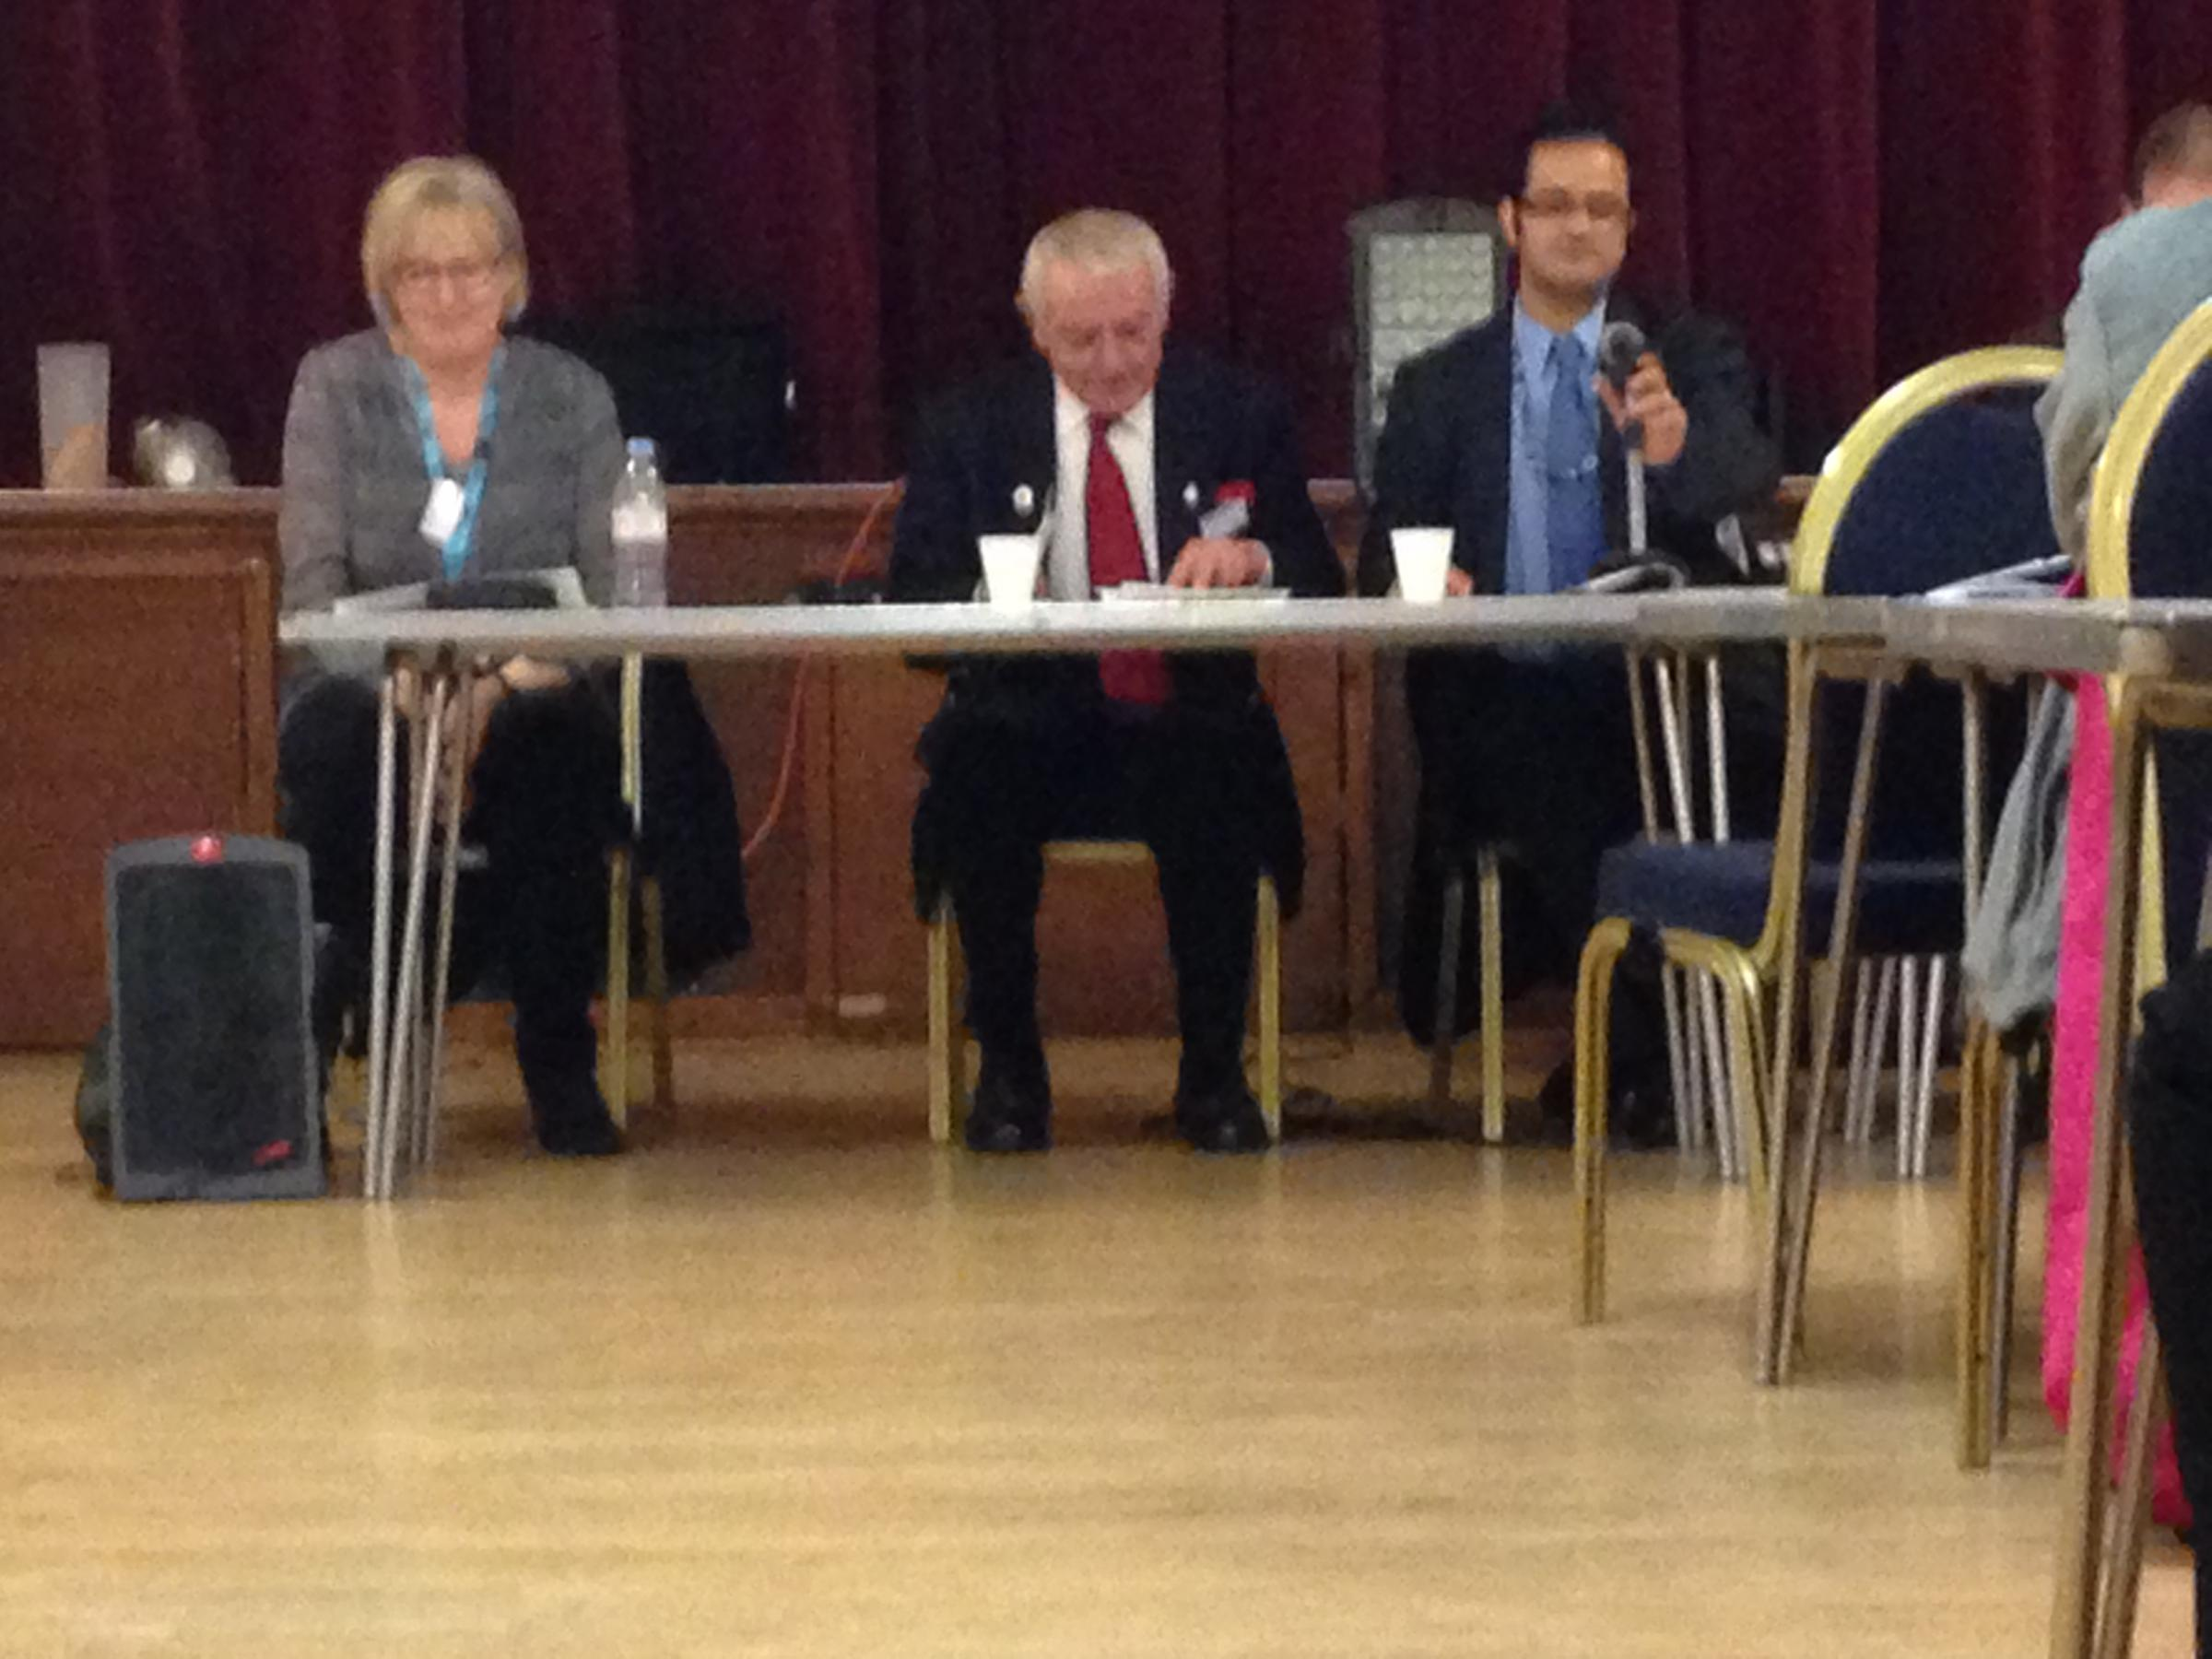 Meeting: (left to right) Jan Robinson, Cllr Noel Spencer and Cllr Asif Ibrahim